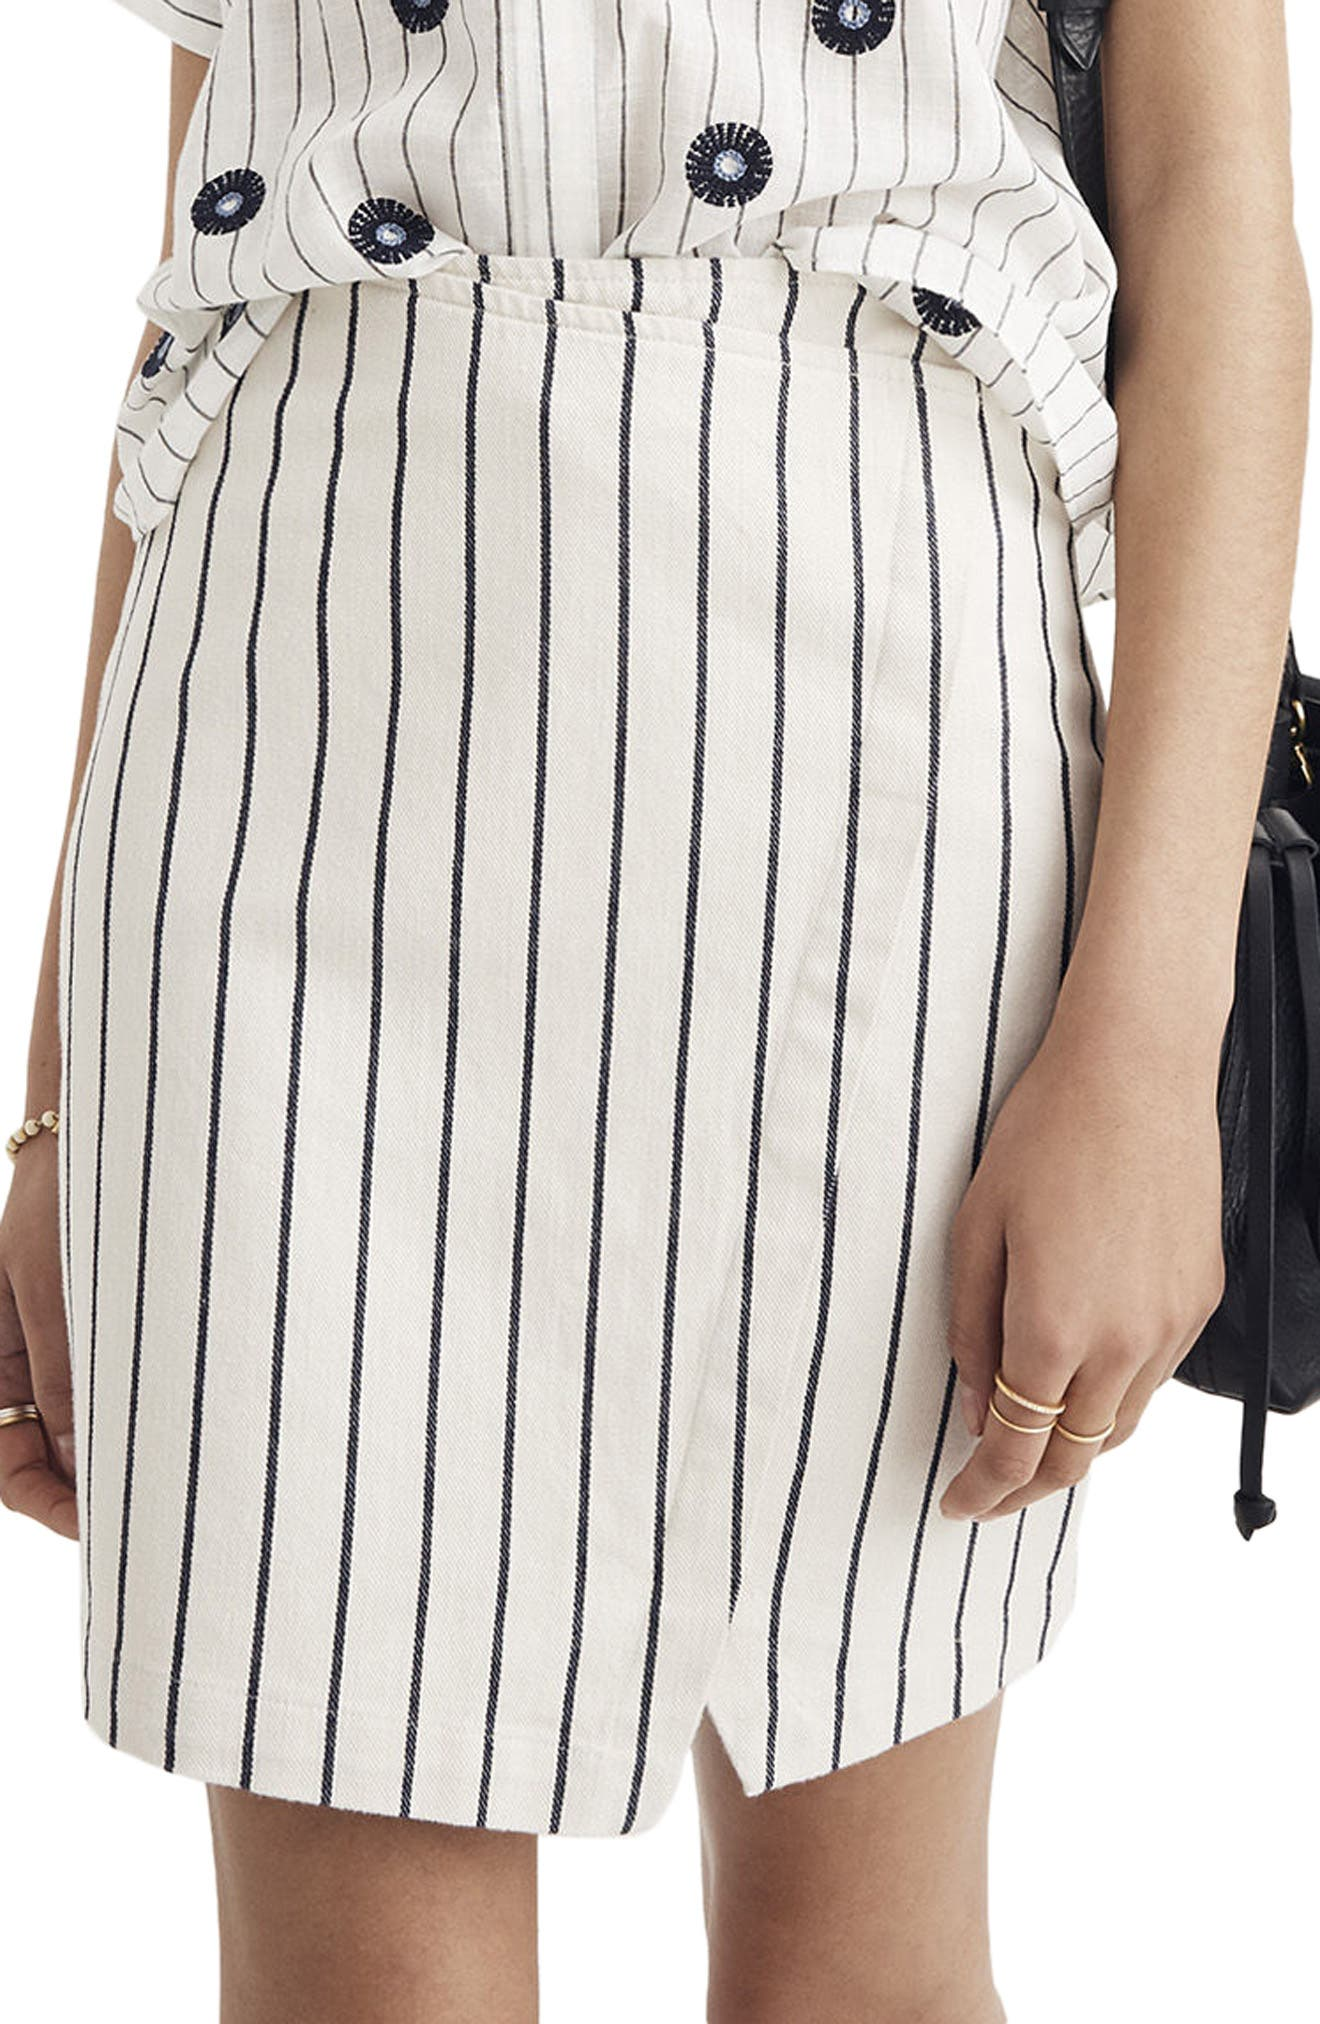 Alternate Image 1 Selected - Madewell Stripe Faux Wrap Skirt